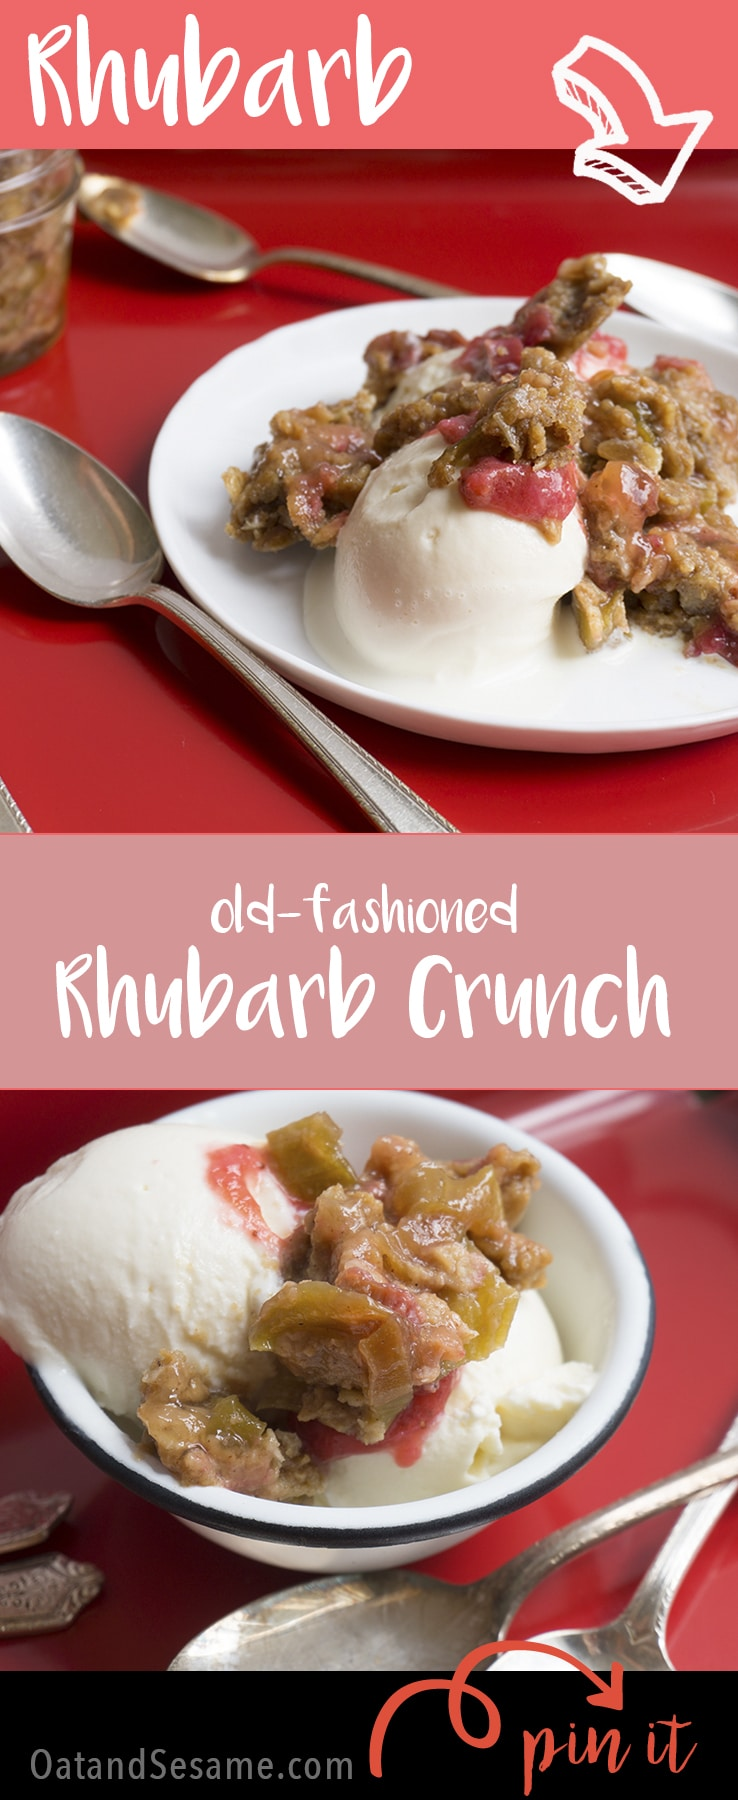 Old-Fashioned Rhubarb Crunch - a family recipe that's great over ice cream! #RHUBARB | #DESSERT | #Recipes at OatandSesame.com